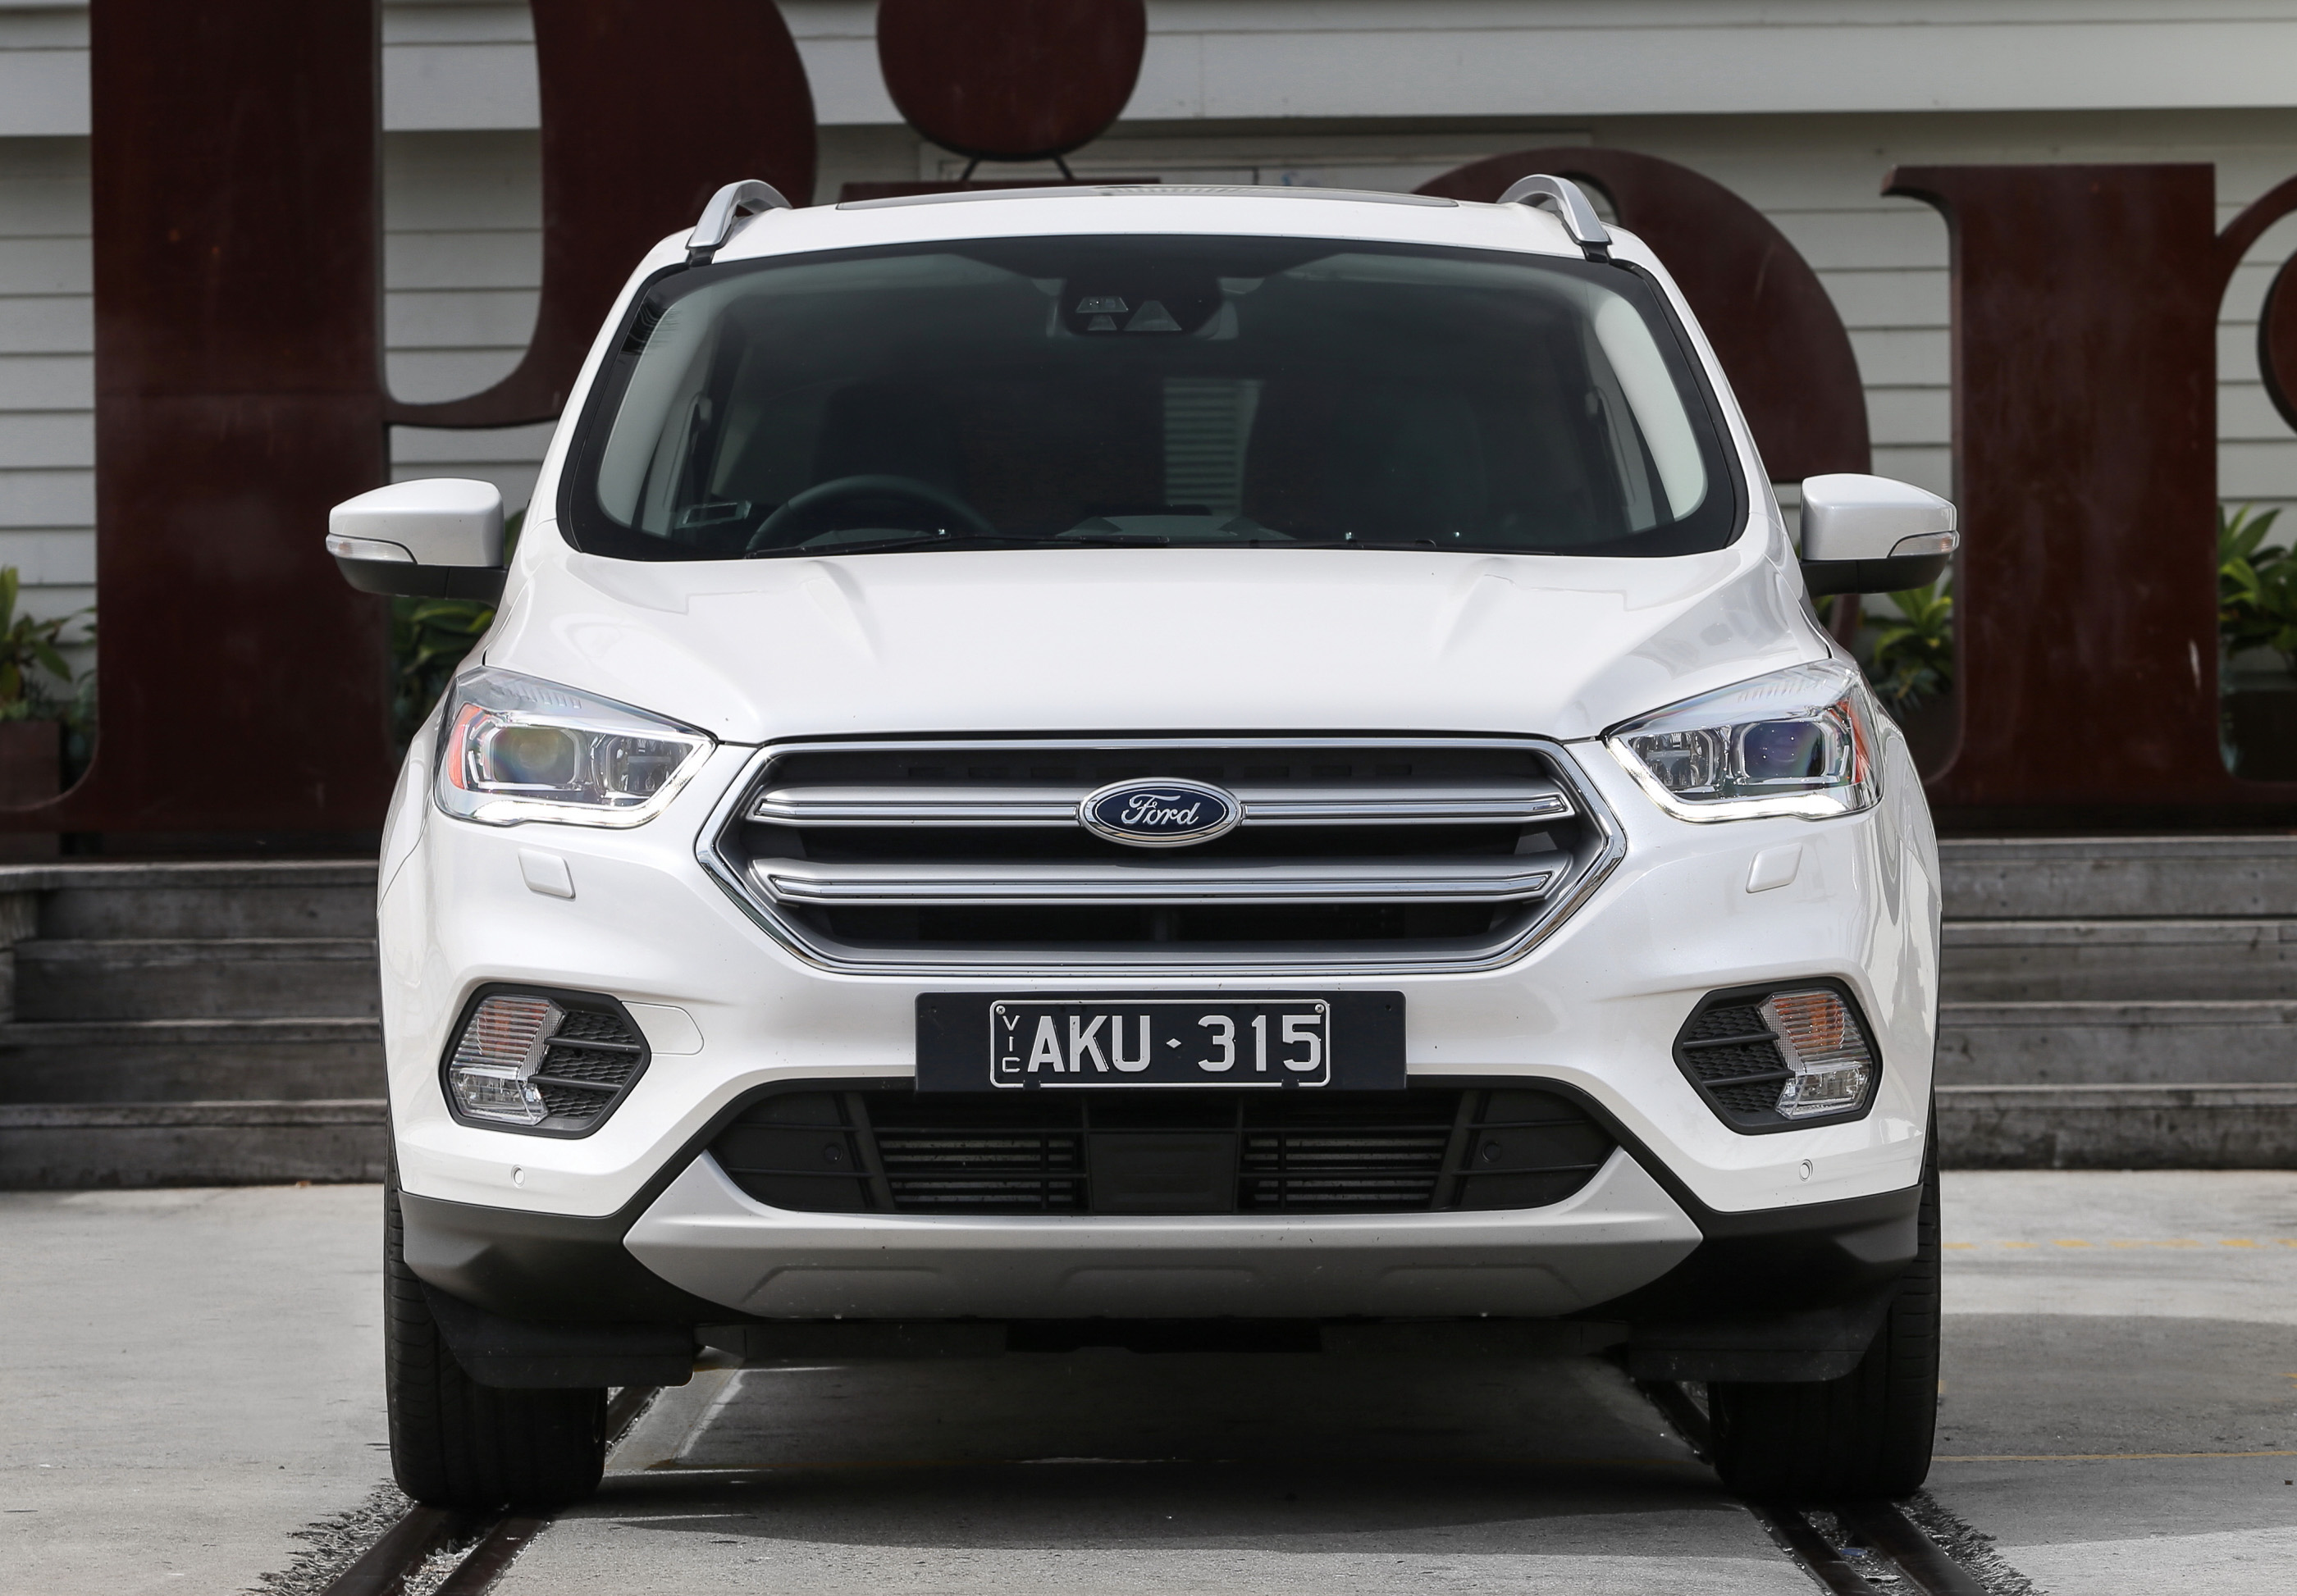 Ford Escape photo 171866